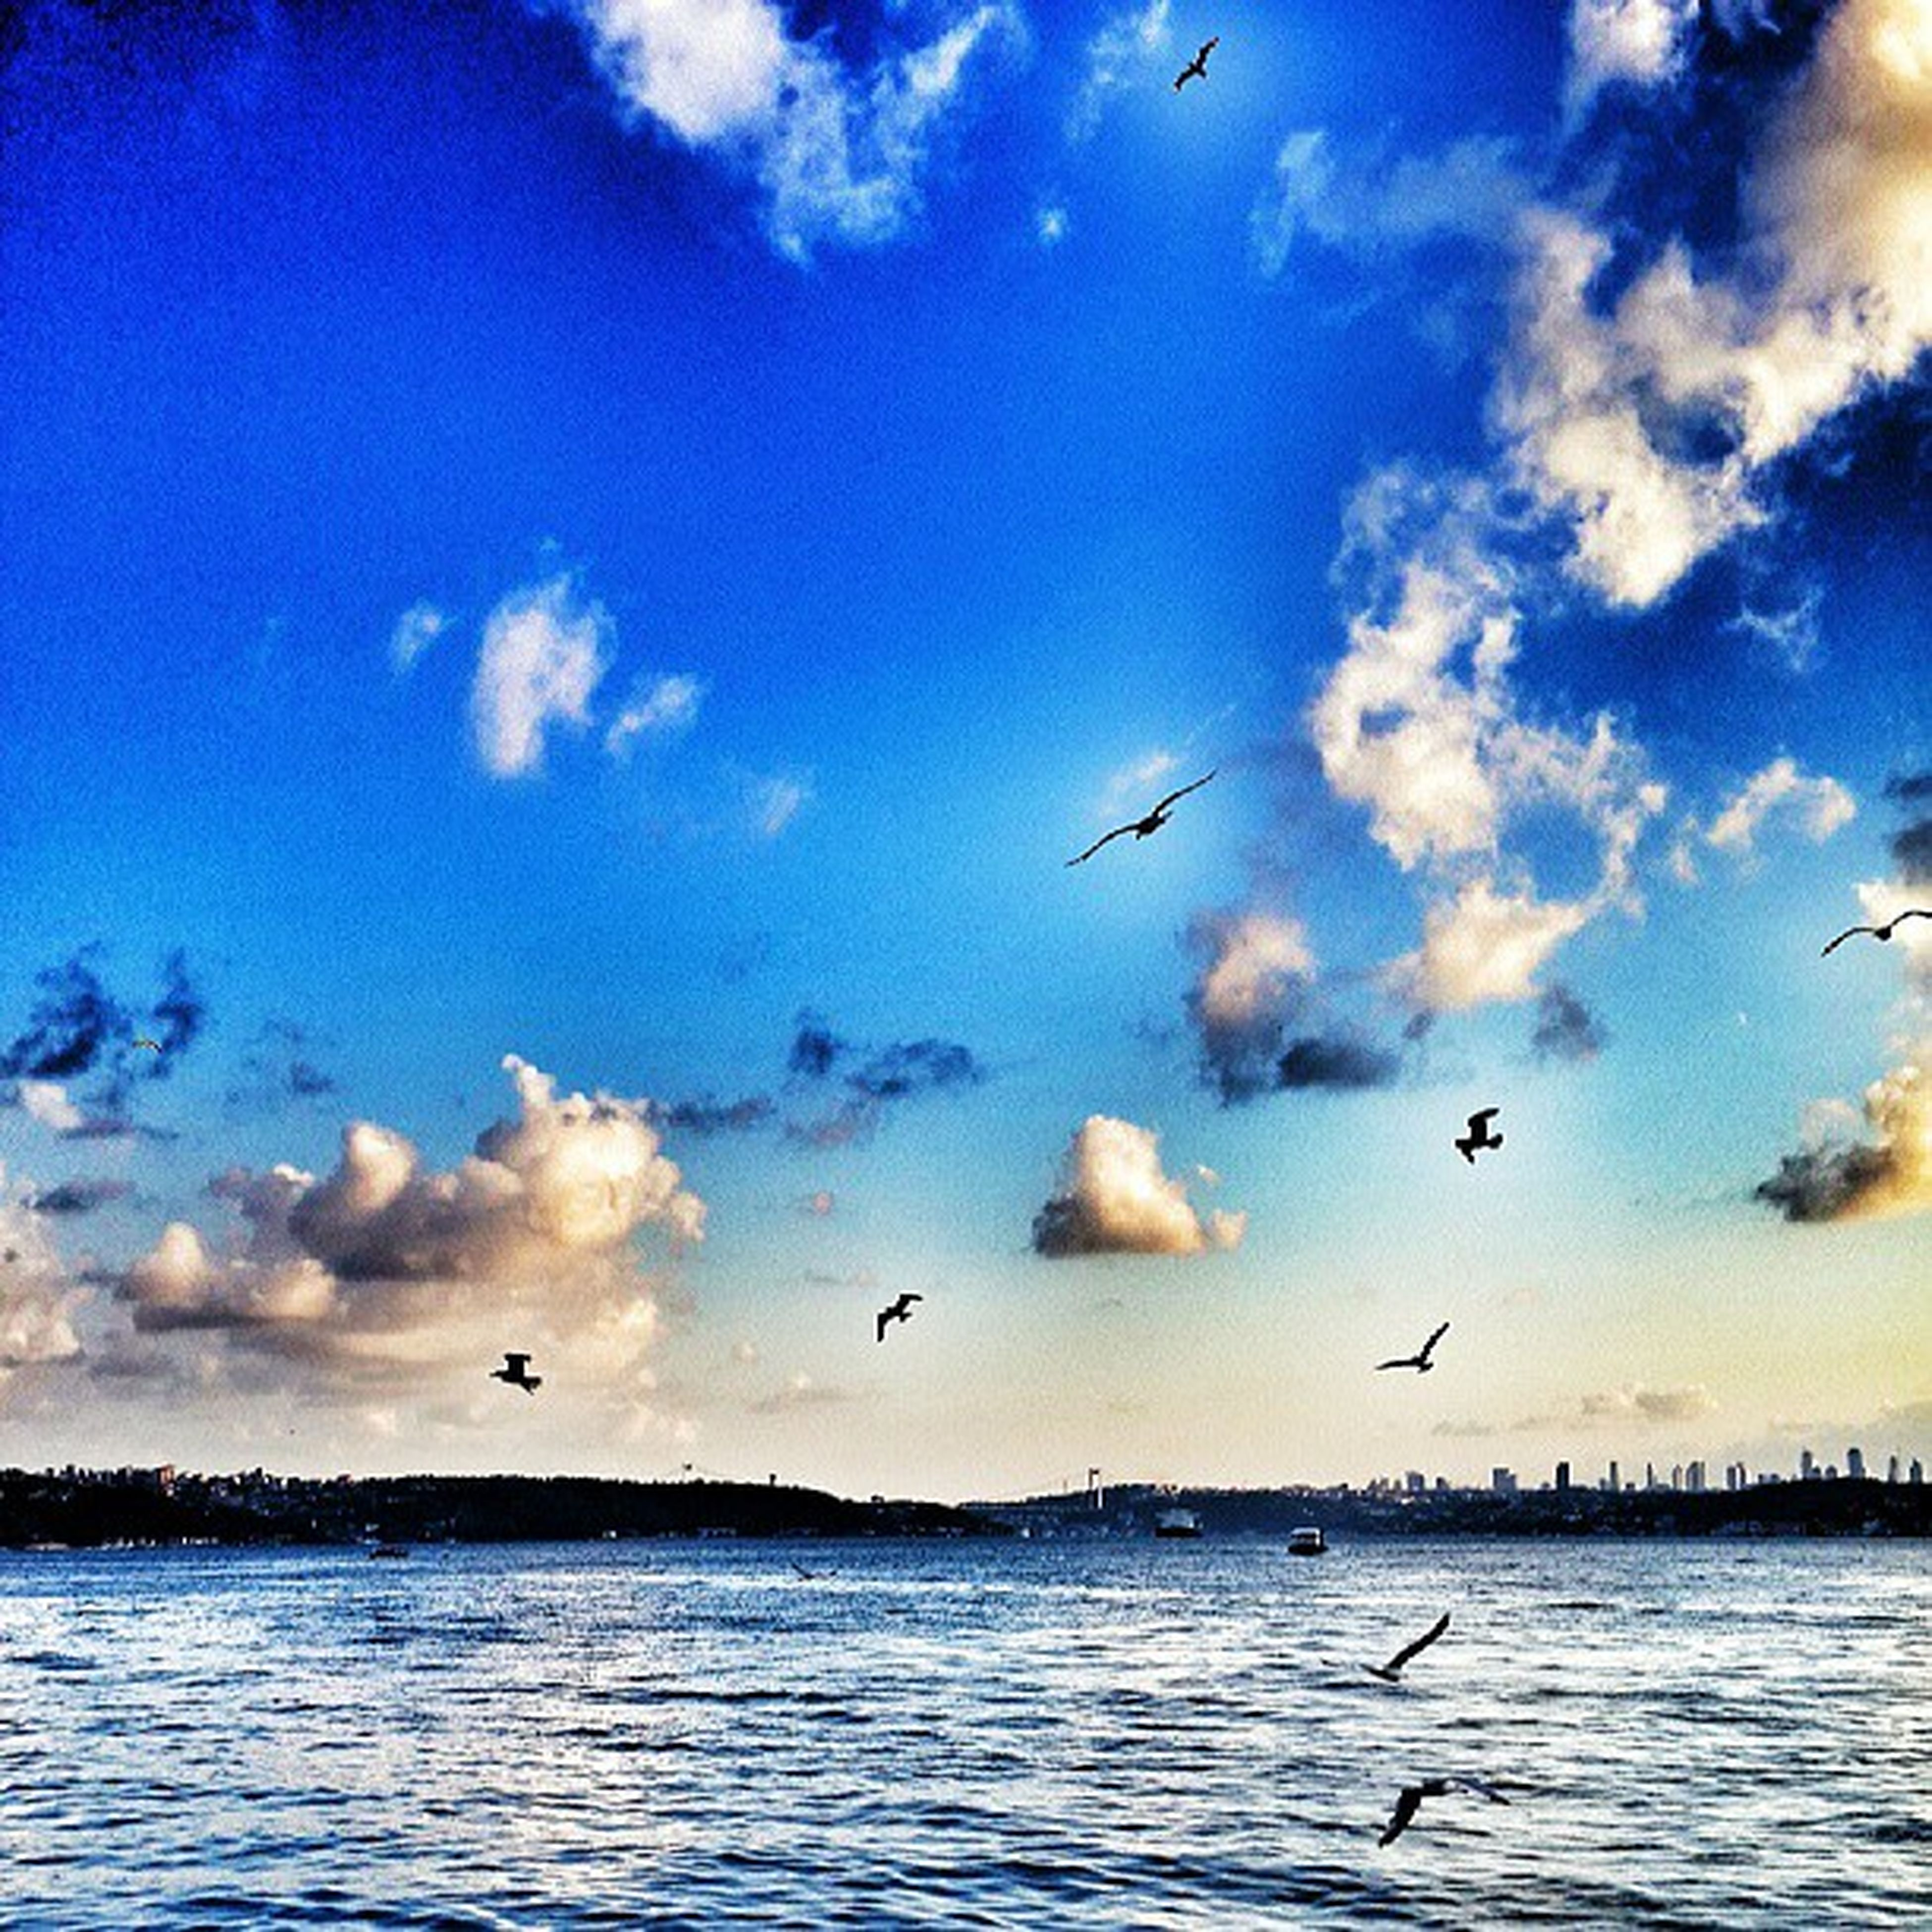 bird, flying, animal themes, animals in the wild, wildlife, water, sky, sea, flock of birds, waterfront, spread wings, blue, mid-air, nature, beauty in nature, seagull, cloud - sky, tranquil scene, scenics